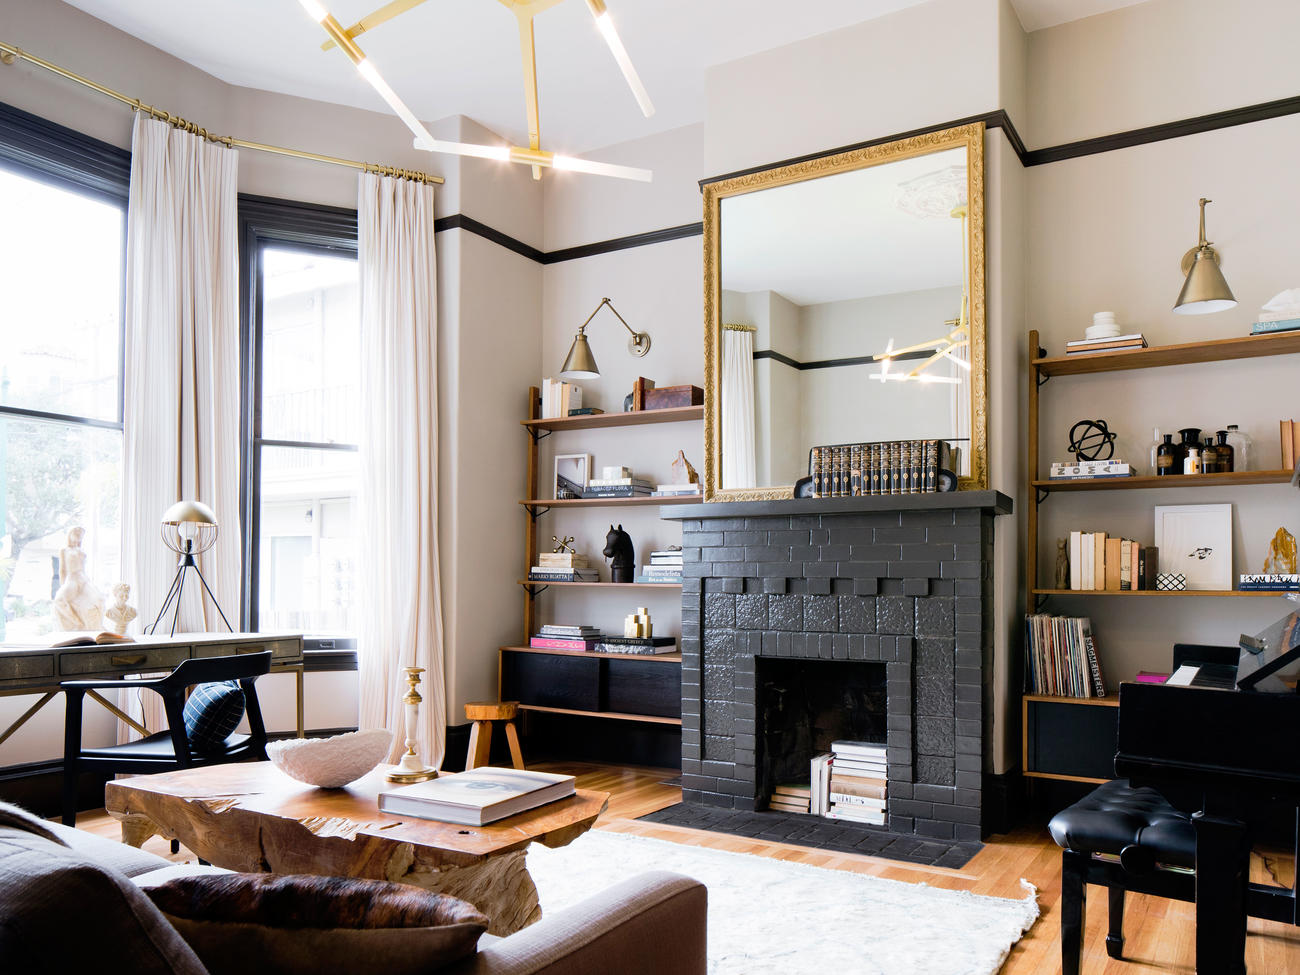 Sunset Editor-in-Chief's Inspiring Victorian Makeover